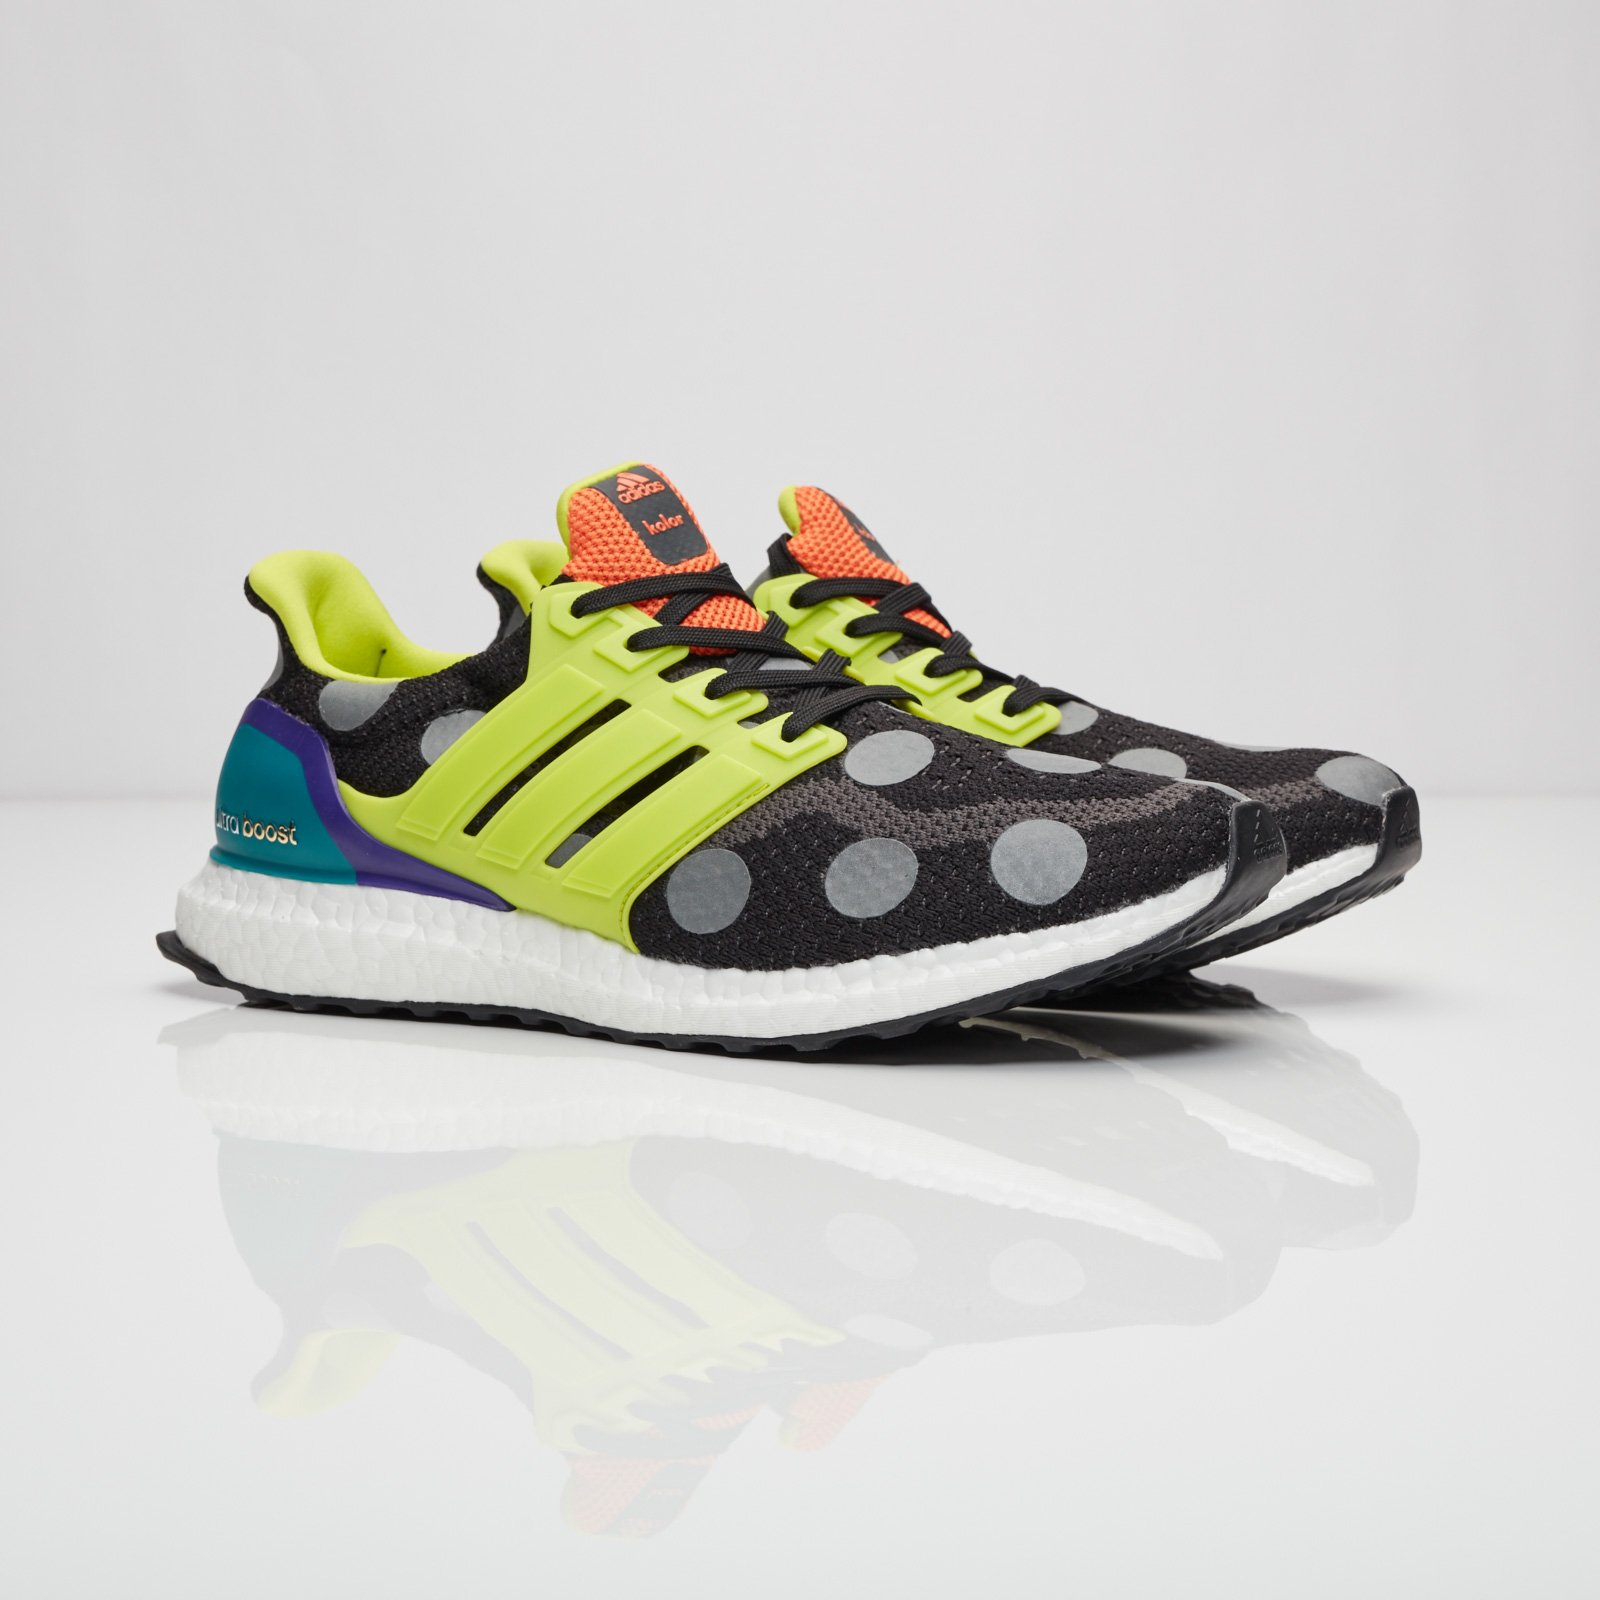 ef2c3677dfb67 where to buy adidas ultra boost kolor black yellow 29f46 710a7